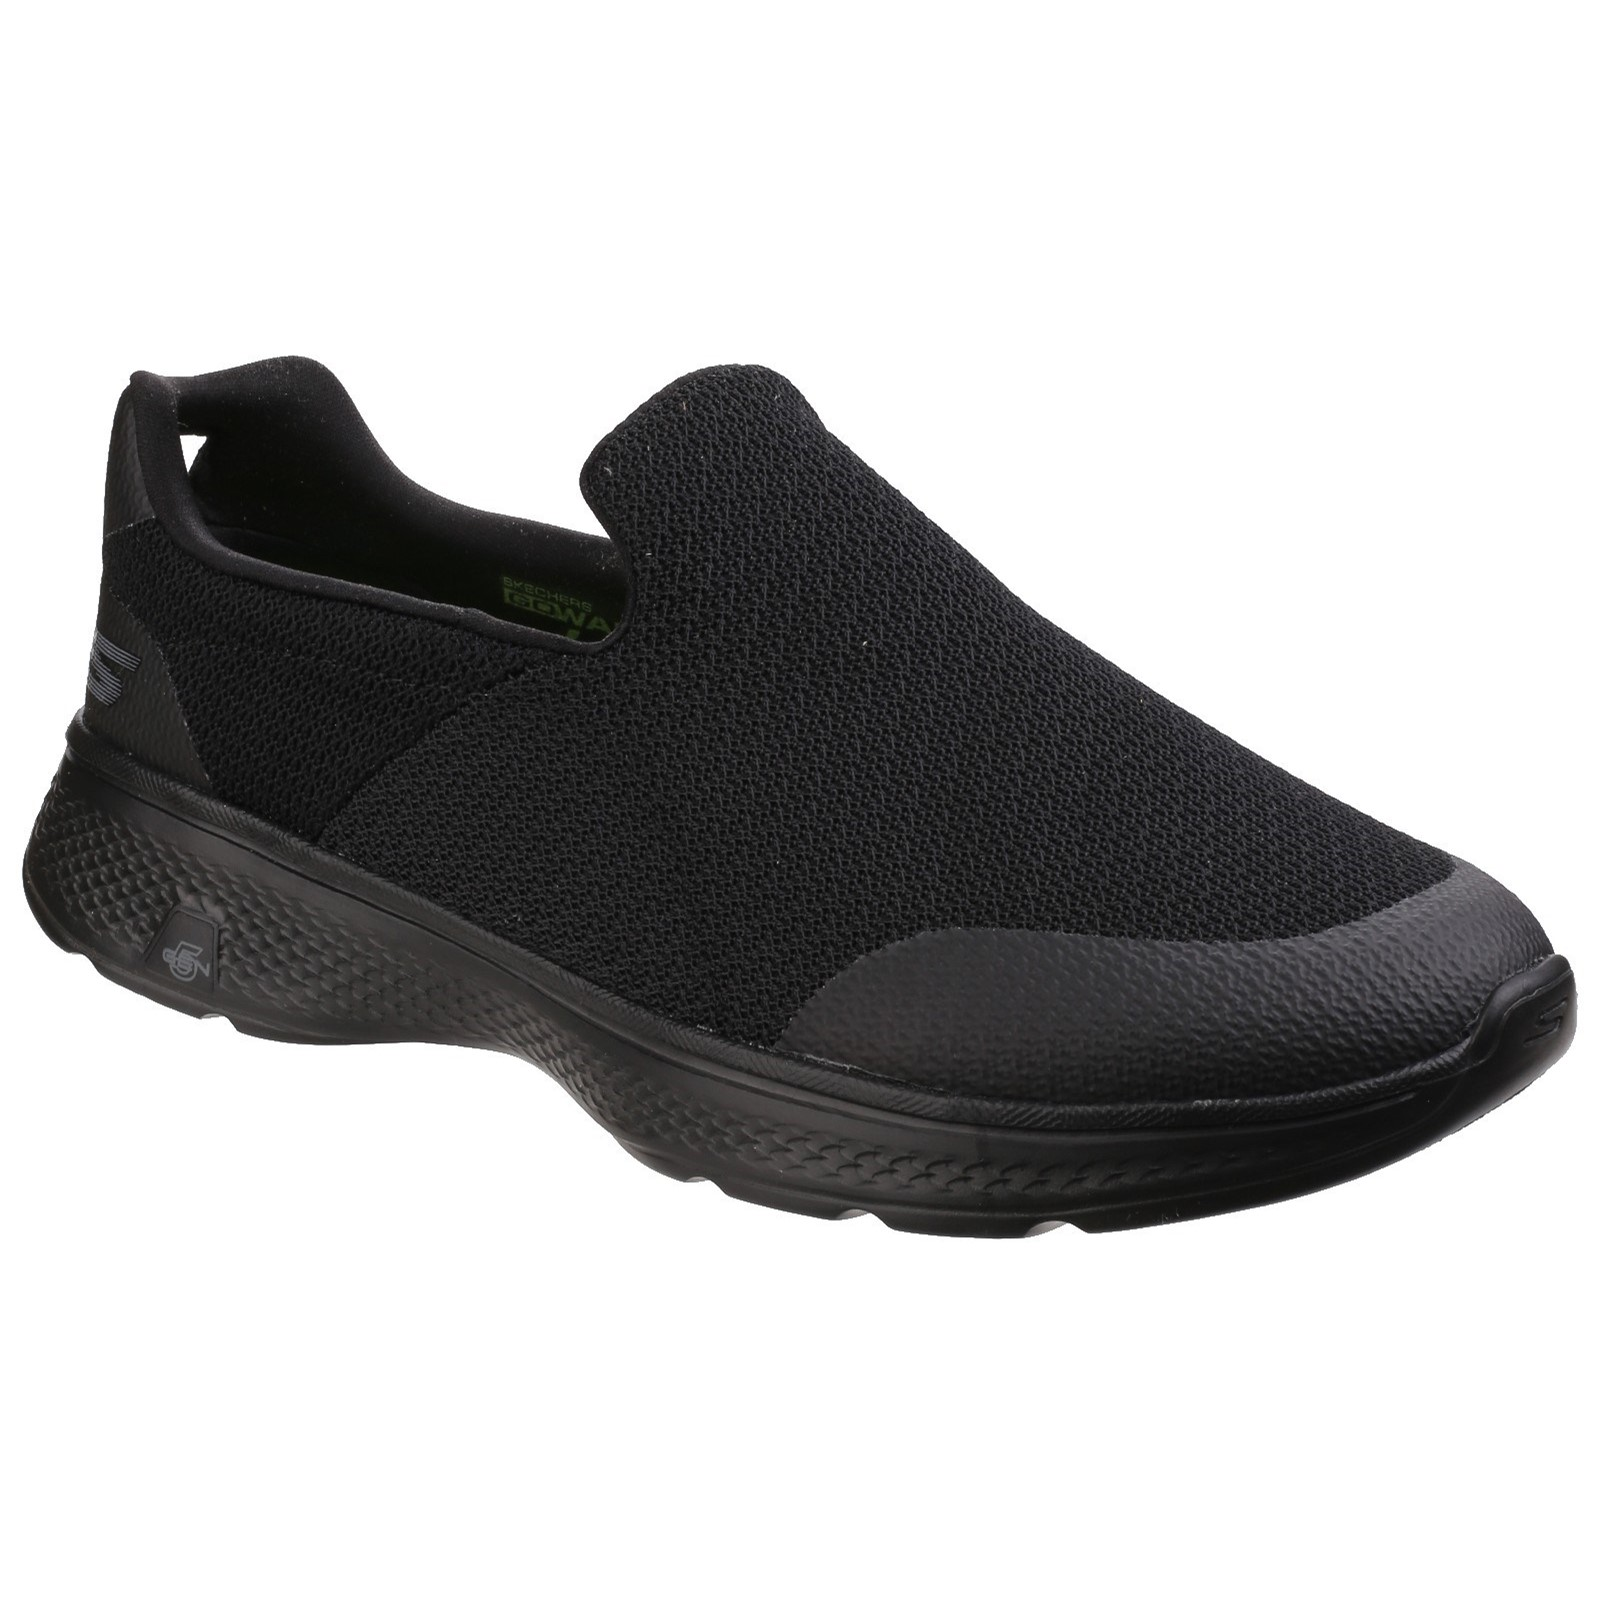 Skechers men Go Walk 4 Esperto Slip On Sportivo